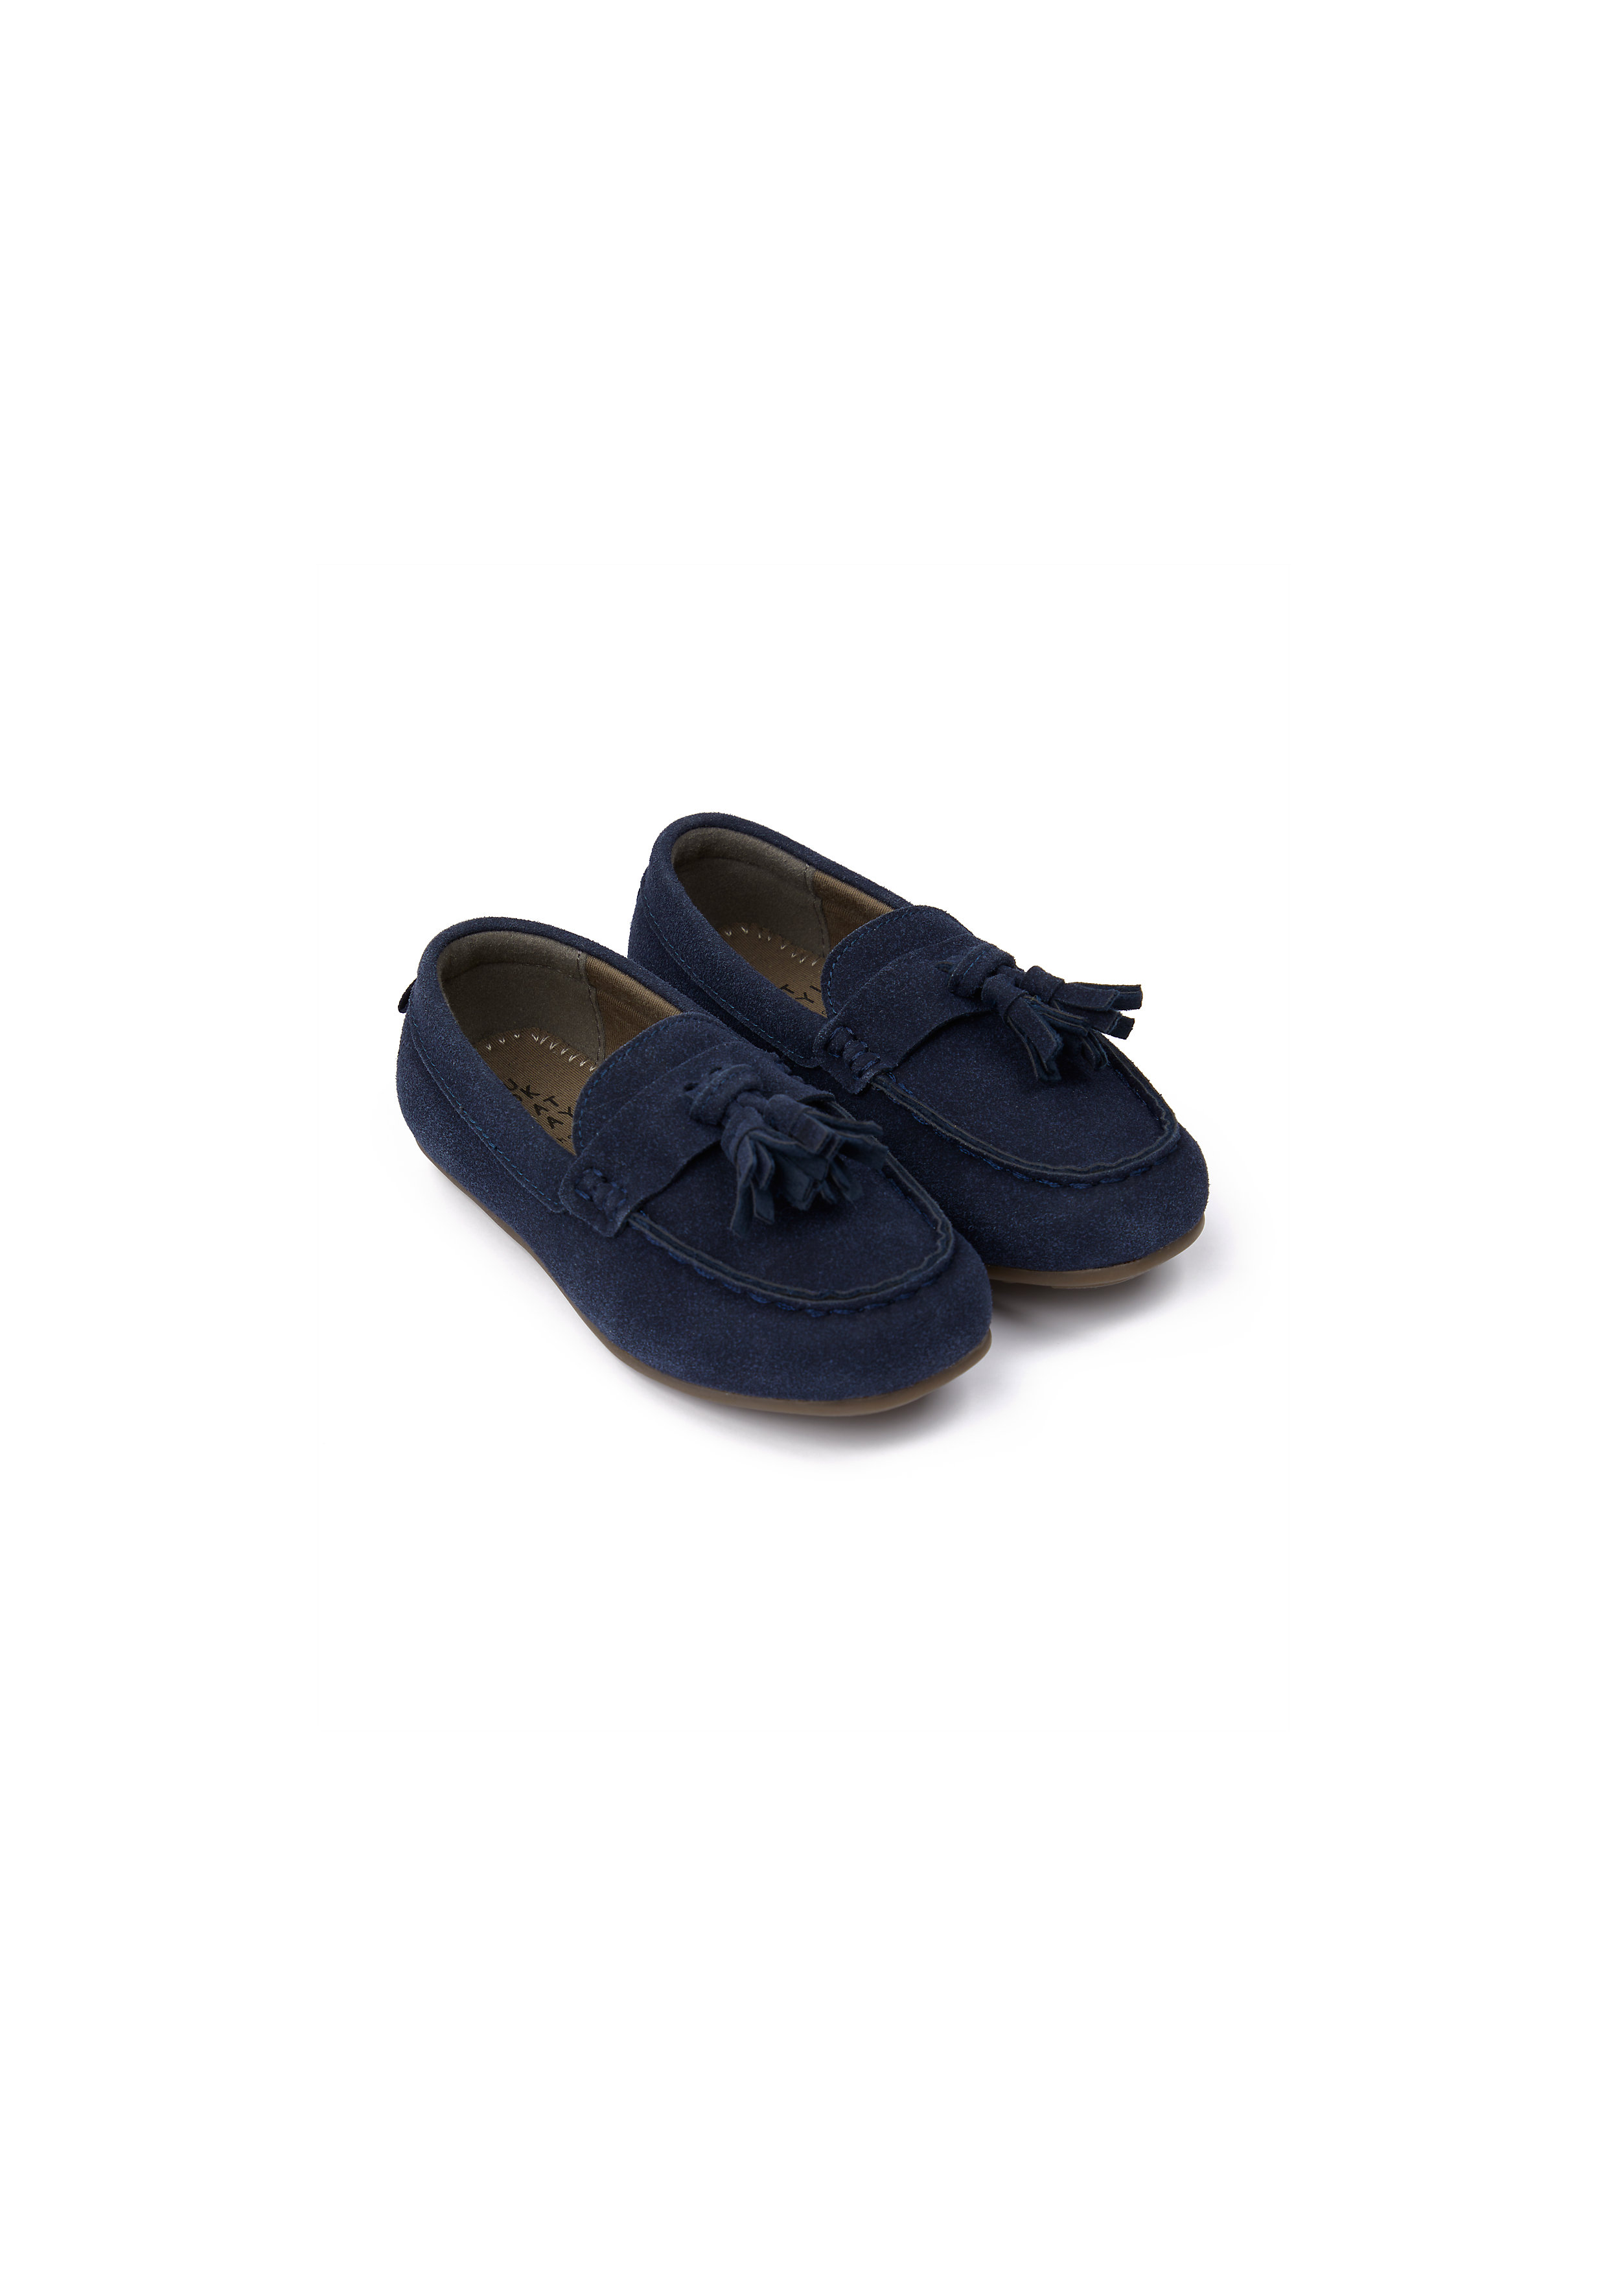 Mothercare | Boys Loafer Shoes Tasseled - Navy